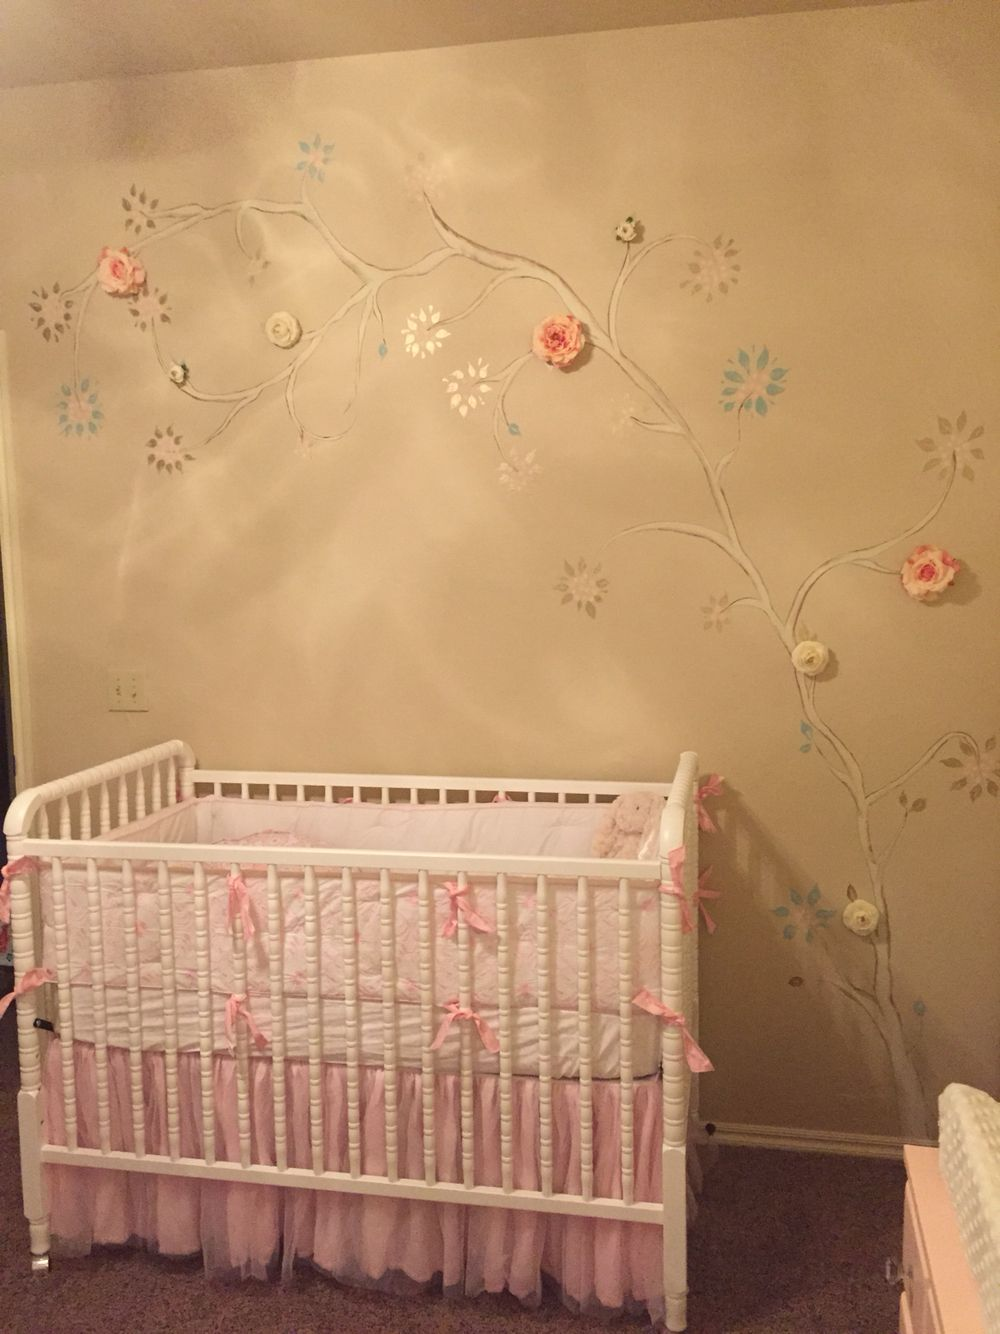 Finished tree mural for our sweet girl!